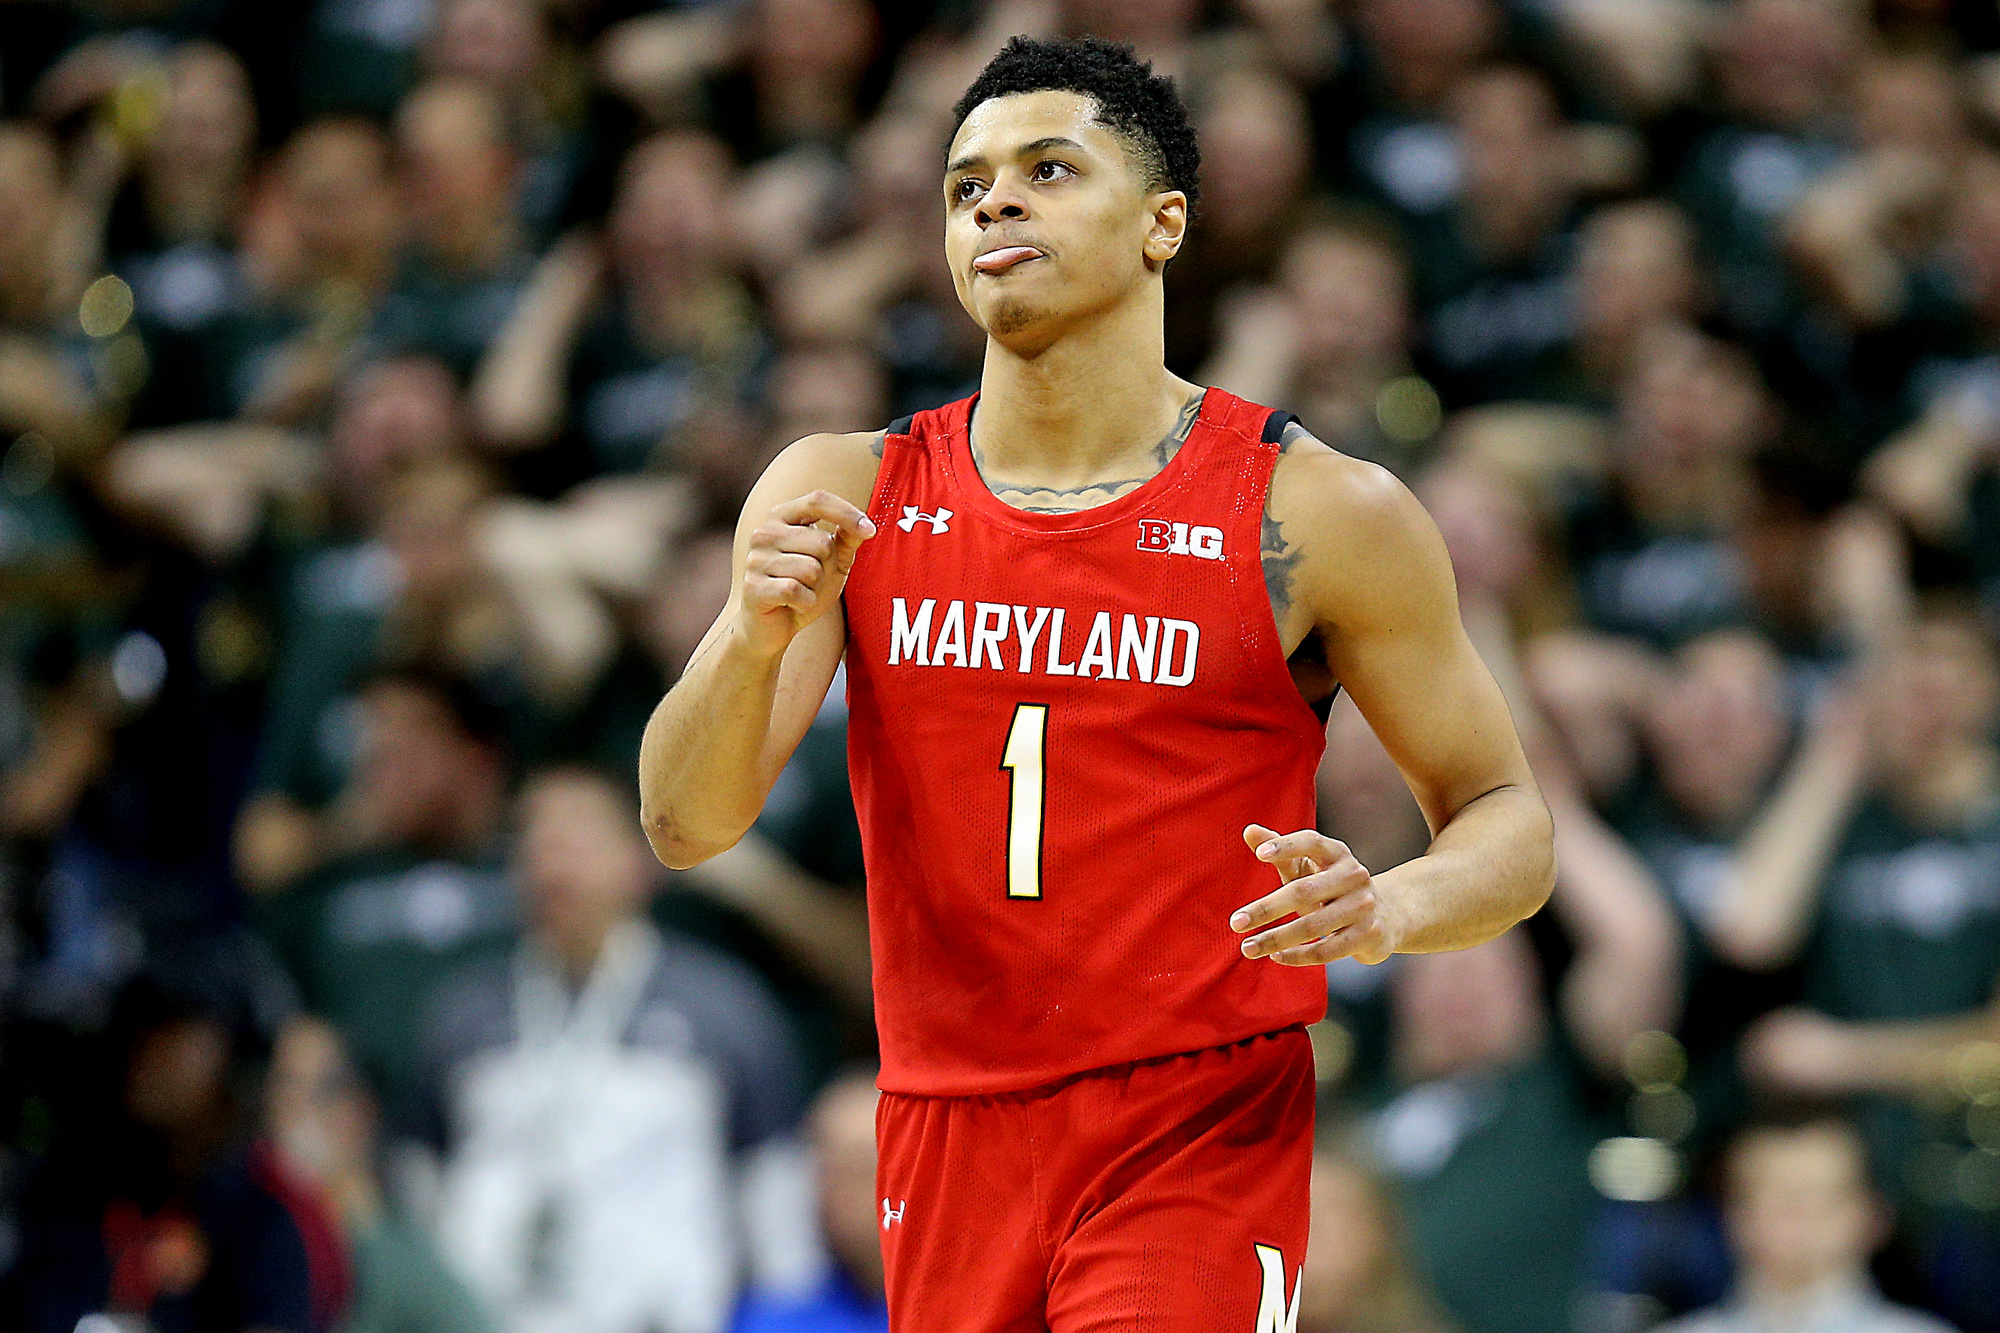 New AP Top 25 men's basketball poll: What happened to Louisville, Syracuse's next opponent?